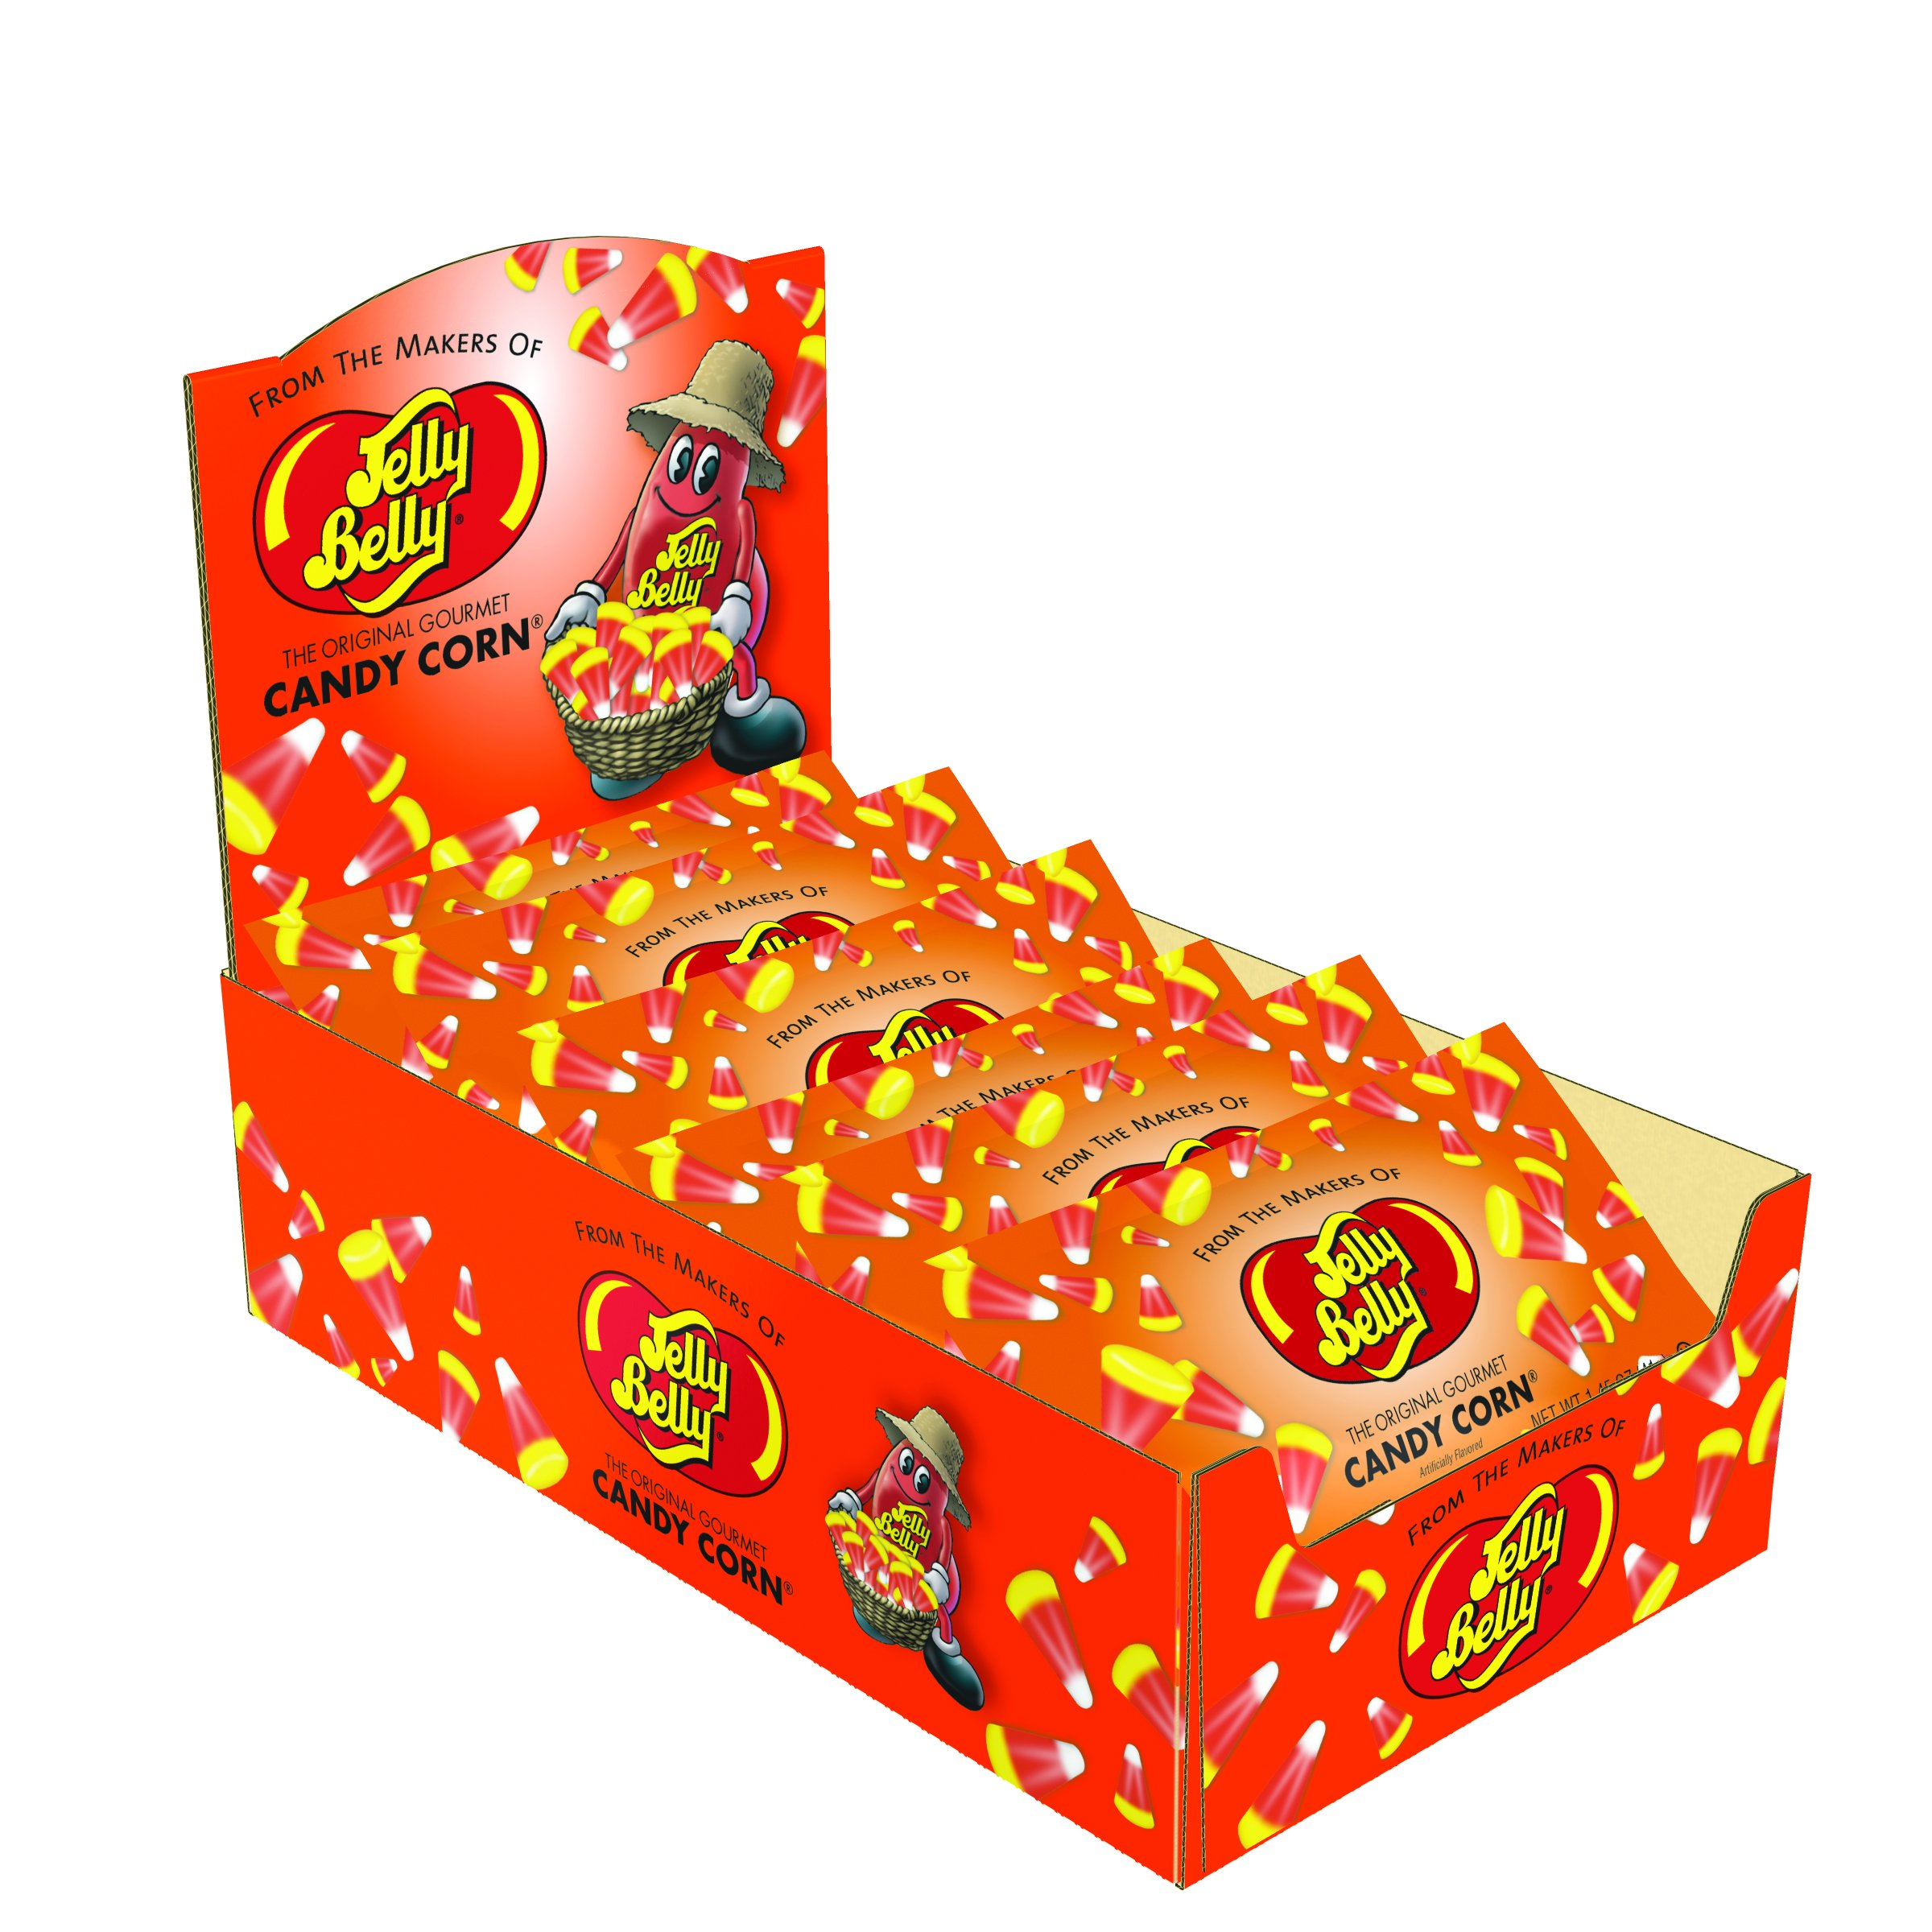 Jelly Belly Candy Corn, 1.45-oz, 24 Pack by Jelly Belly